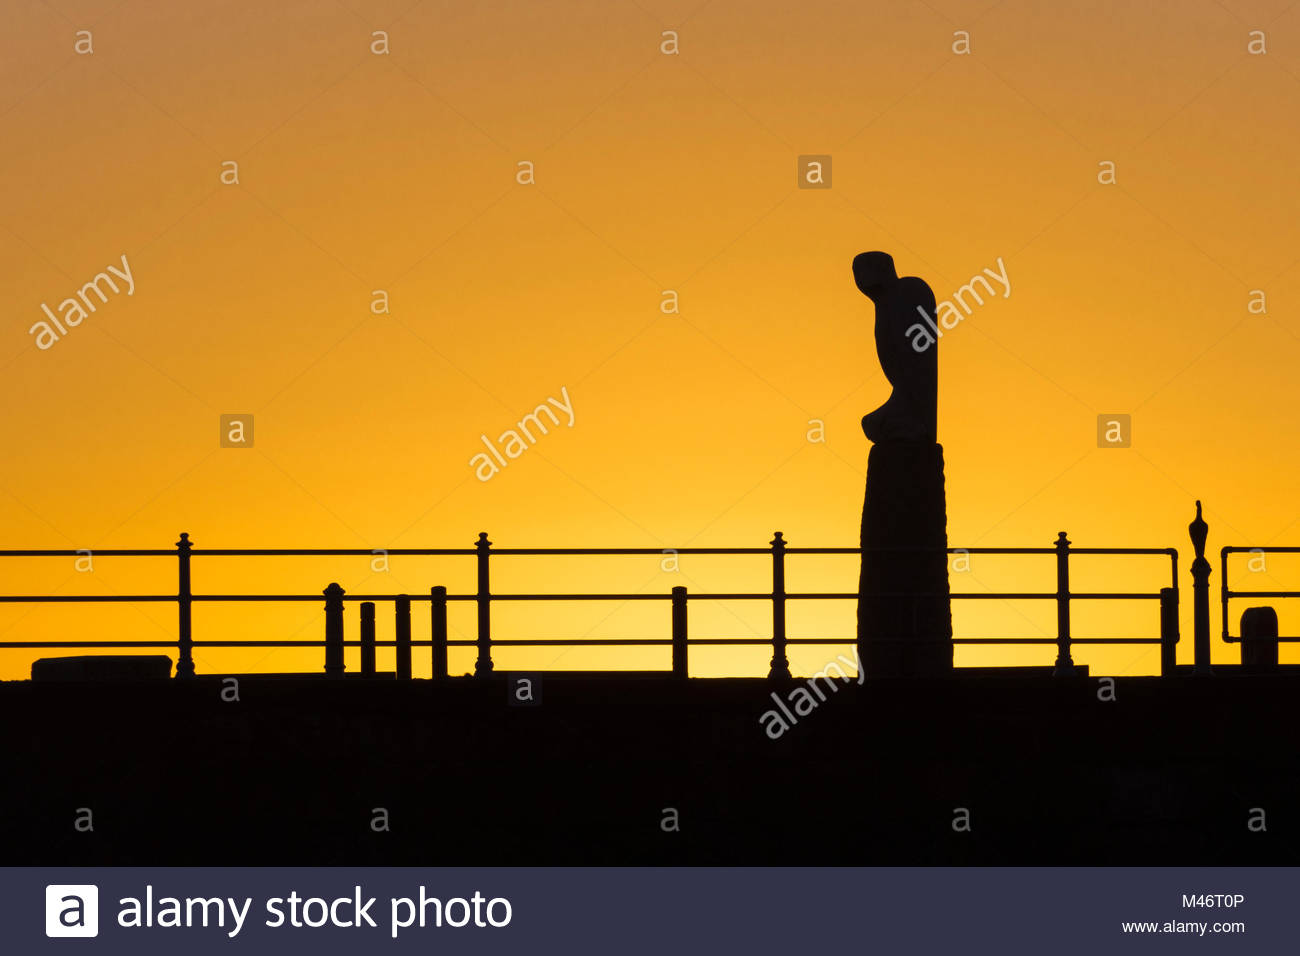 The Mythical Bird sculpture by Gordon Young, part of the Tern Project, is silhouetted against an orange sunset at - Stock Image